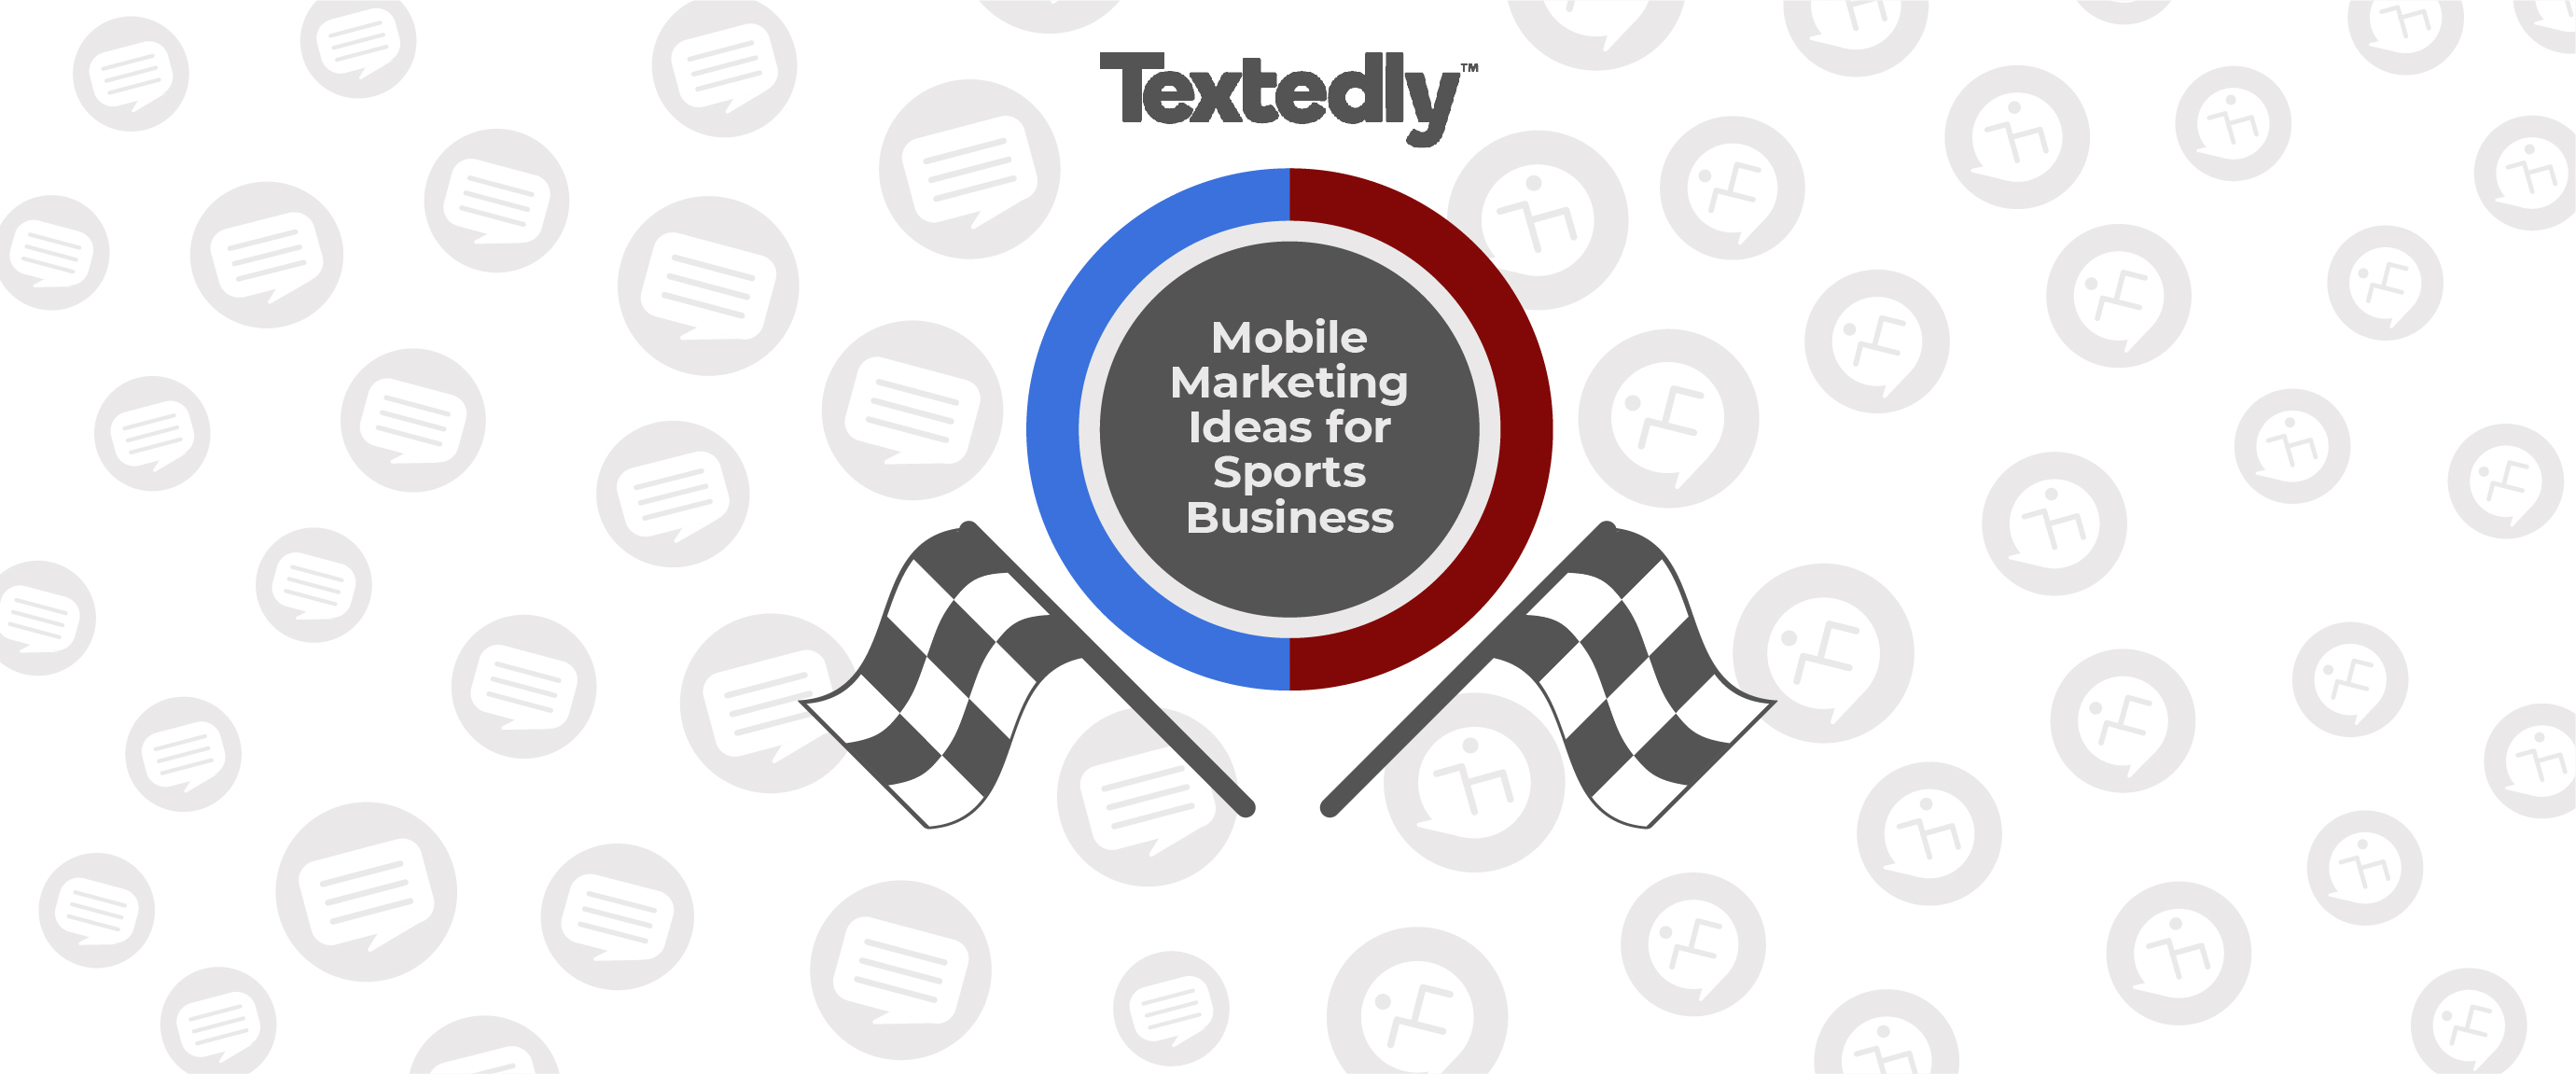 Mobile Marketing Ideas for Sports Business